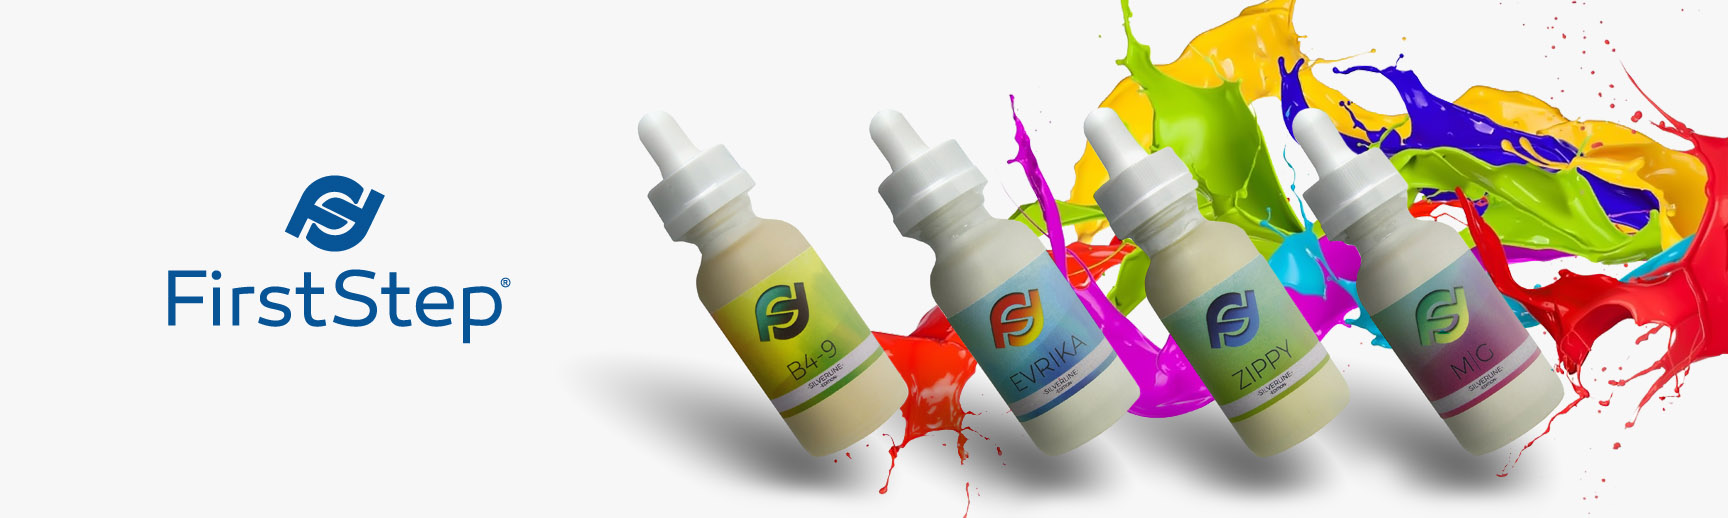 firststep-eliquid-1.jpg